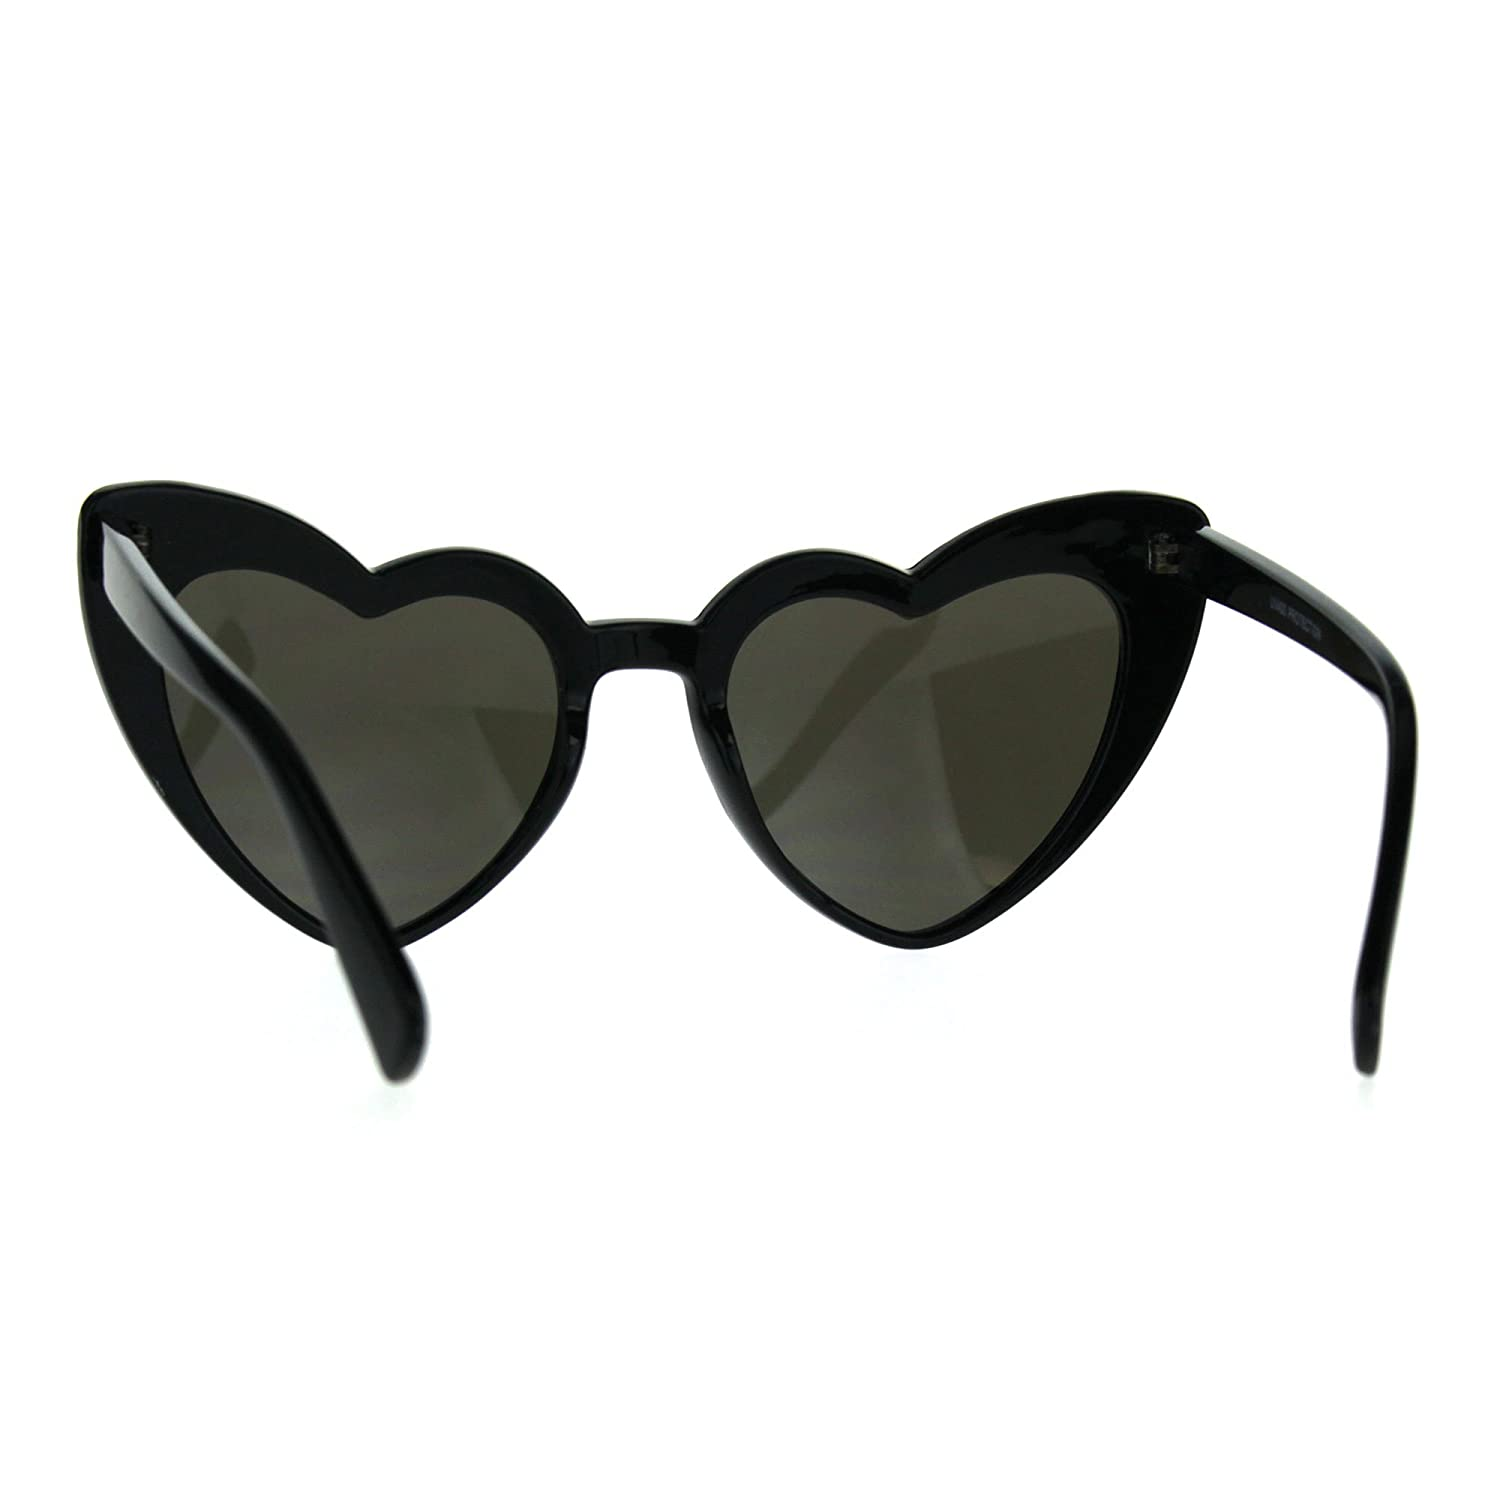 f21682ee06 Amazon.com  Womens Heart Shape Color Mirror Cat Eye Plastic Groovy  Sunglasses Black Blue  Clothing